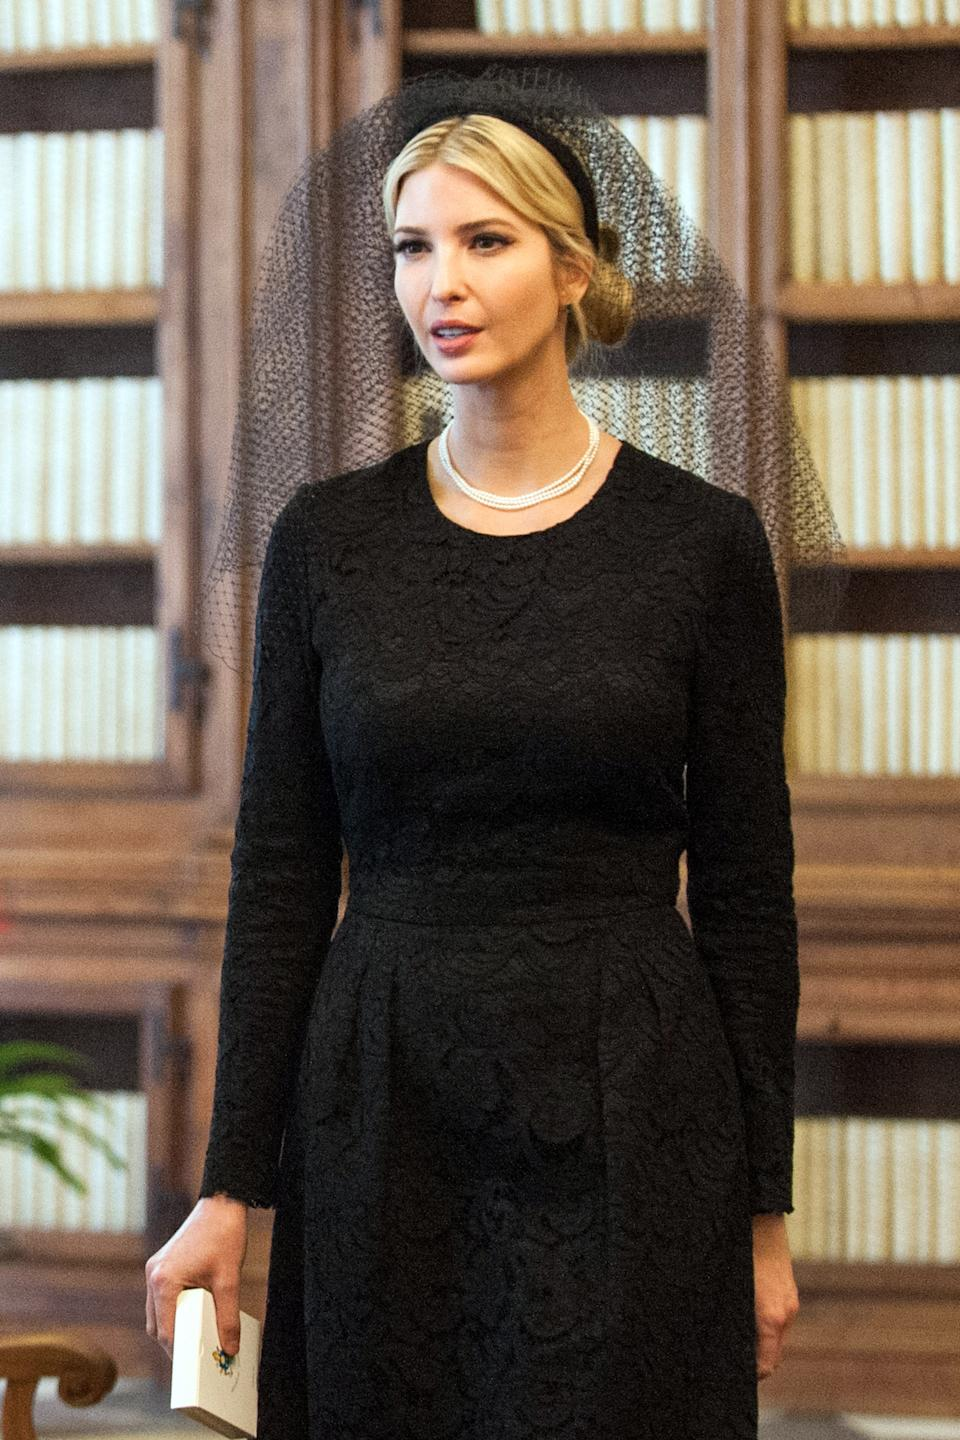 Ivanka Trump attends an audience with Pope Francis in May 2017. (Photo by Vatican Pool/Getty Images)